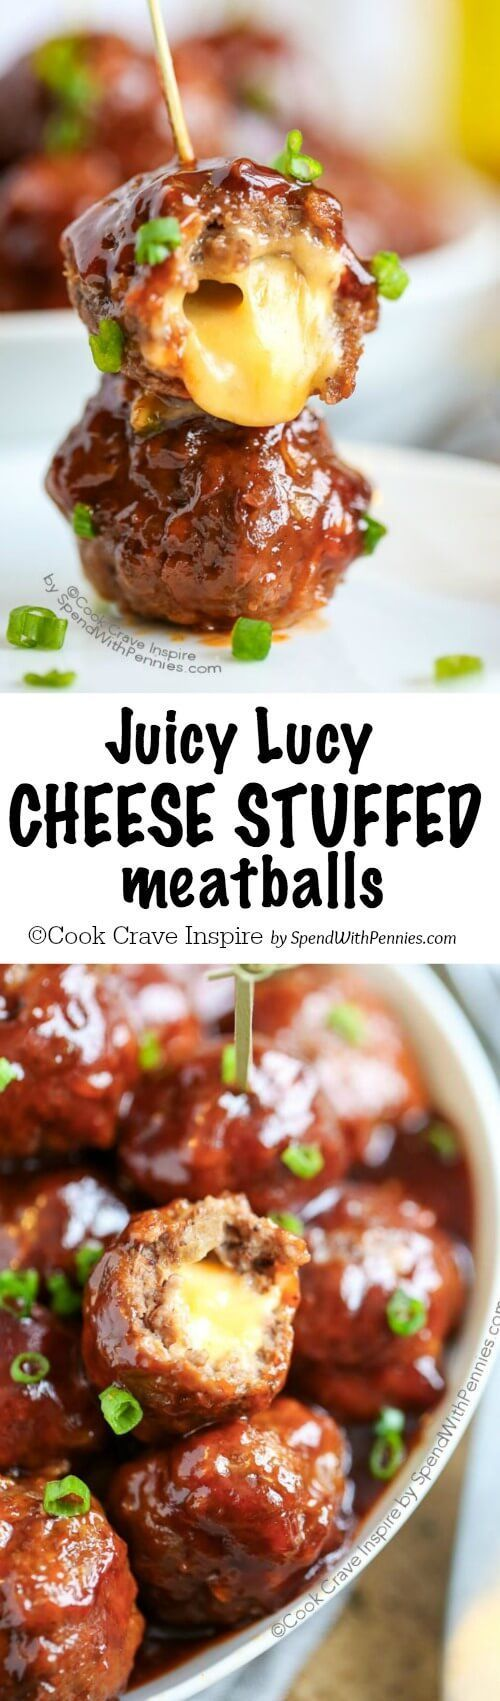 chromehearts online Juicy Lucy meatballs These are of of my favorite game day appetizers Gooey